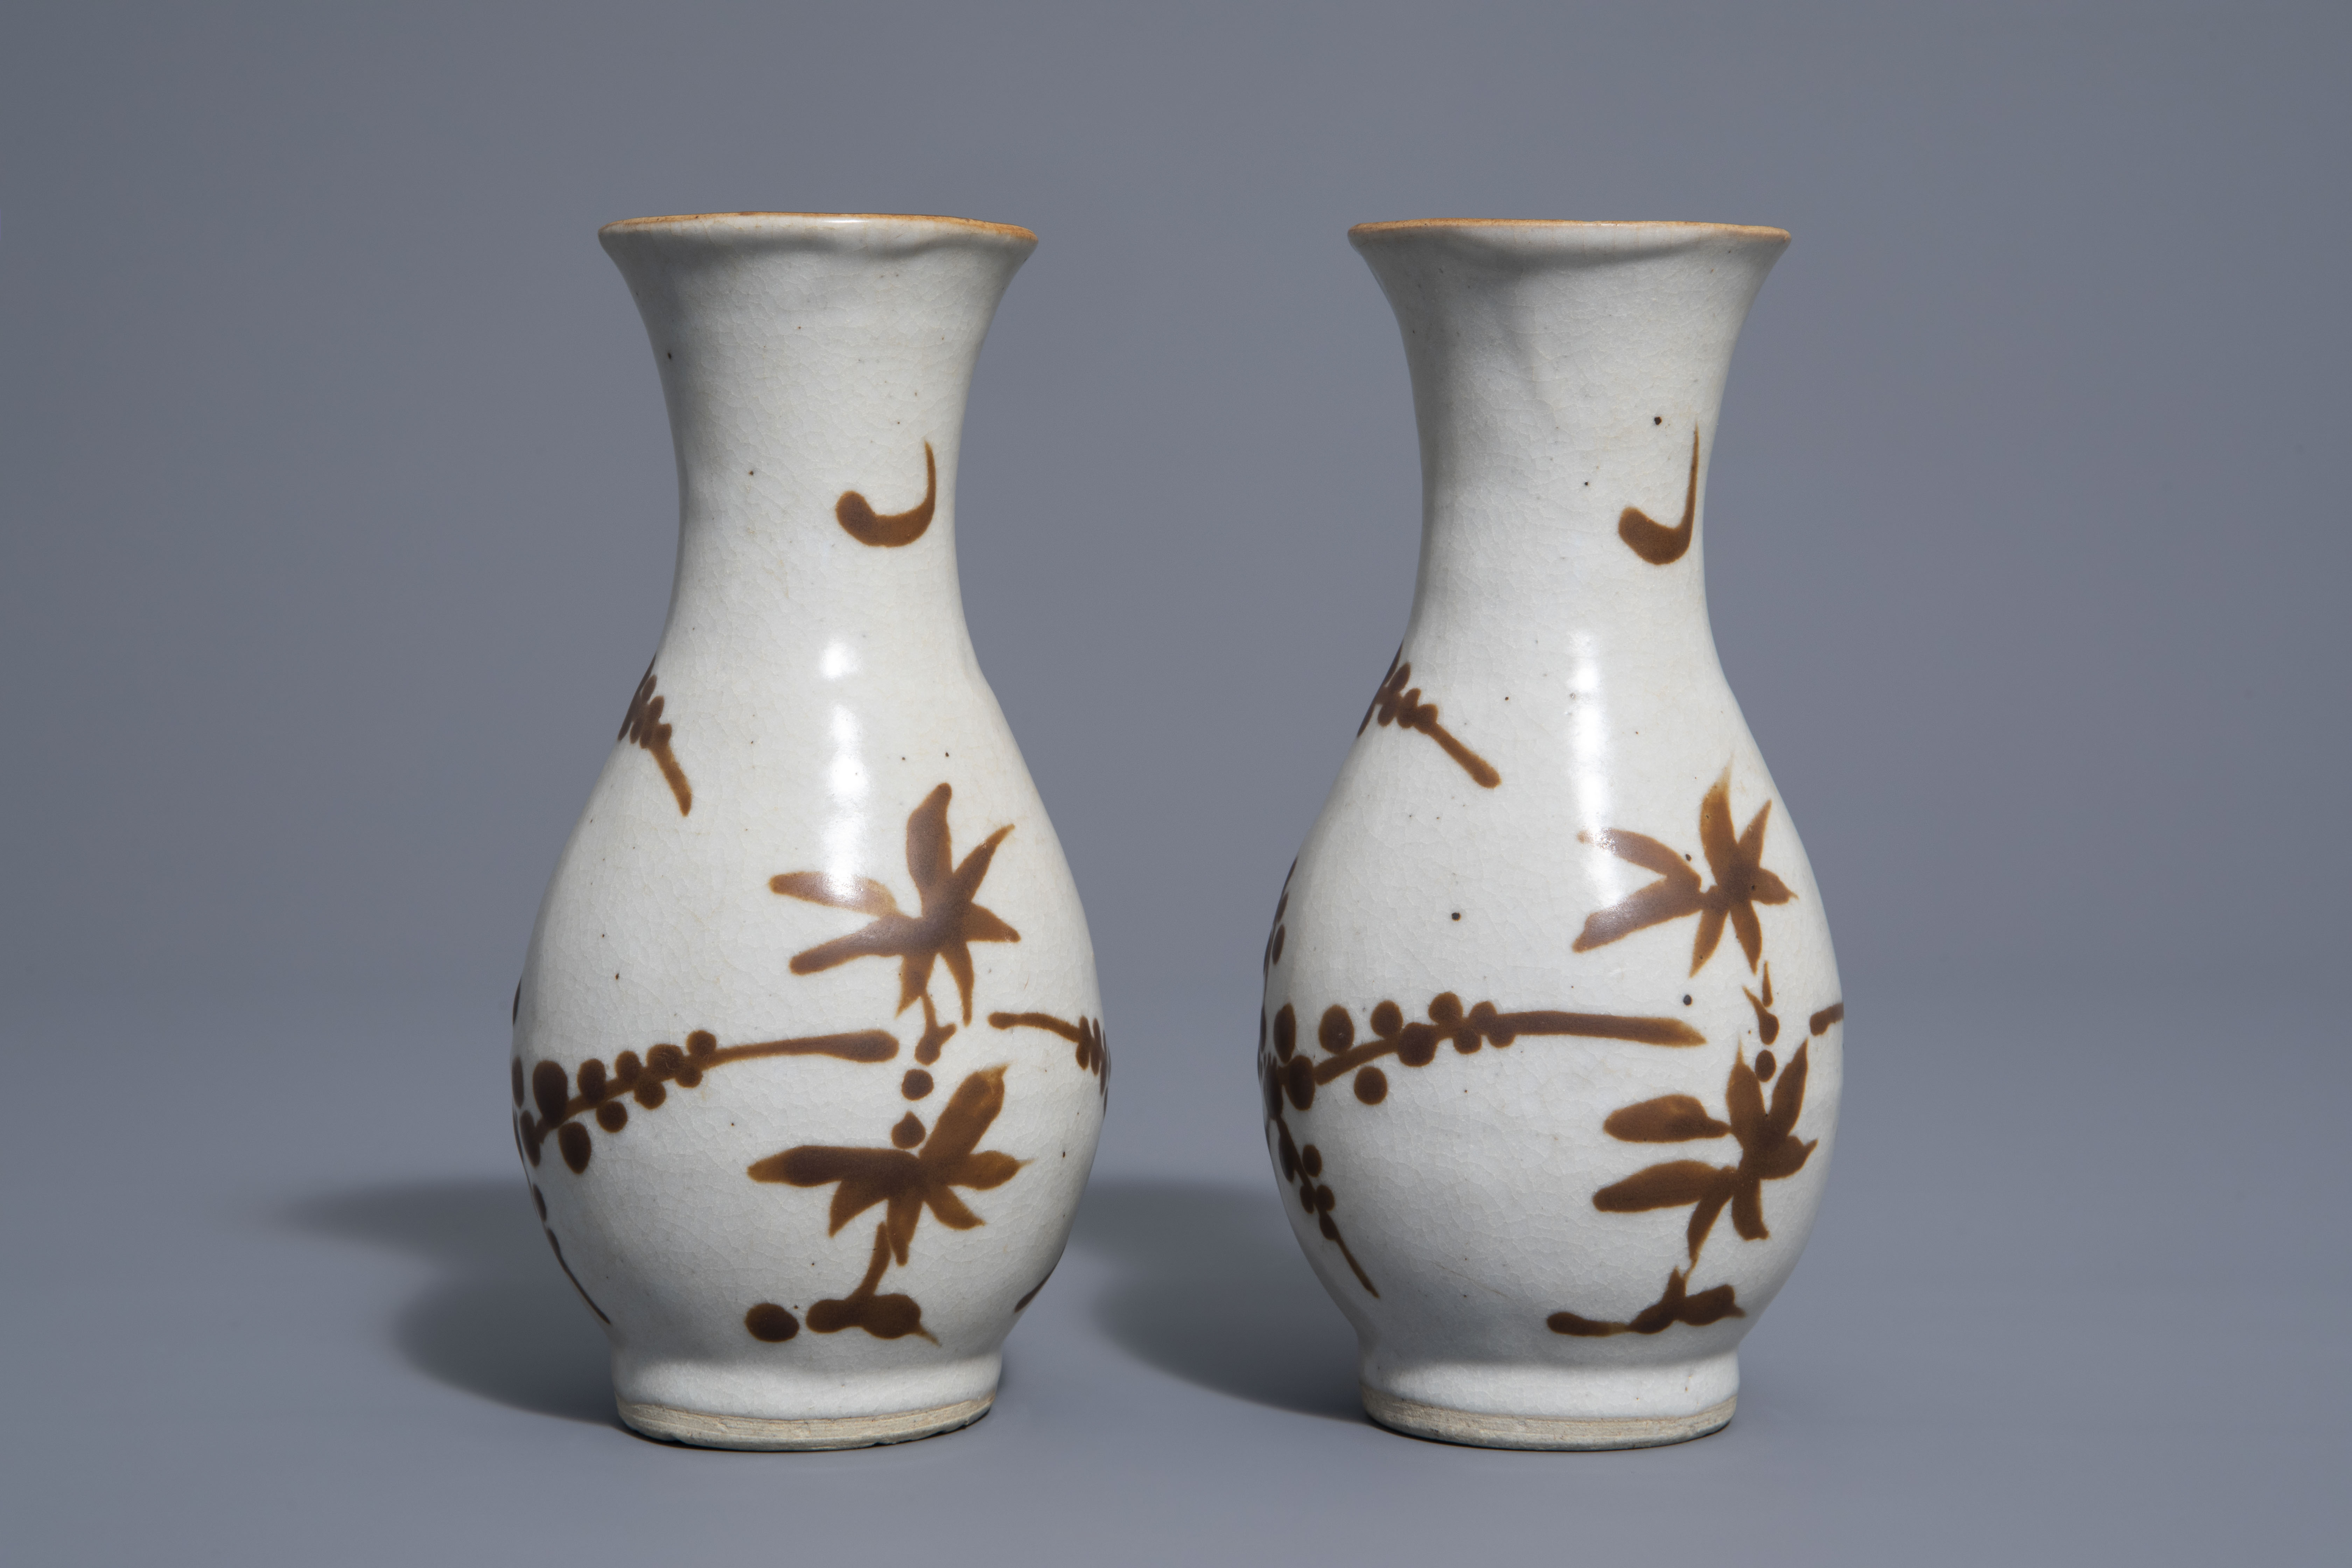 A pair of Chinese Cizhou style slip decorated vases with birds on blossoming branches, 19th C. - Image 4 of 7